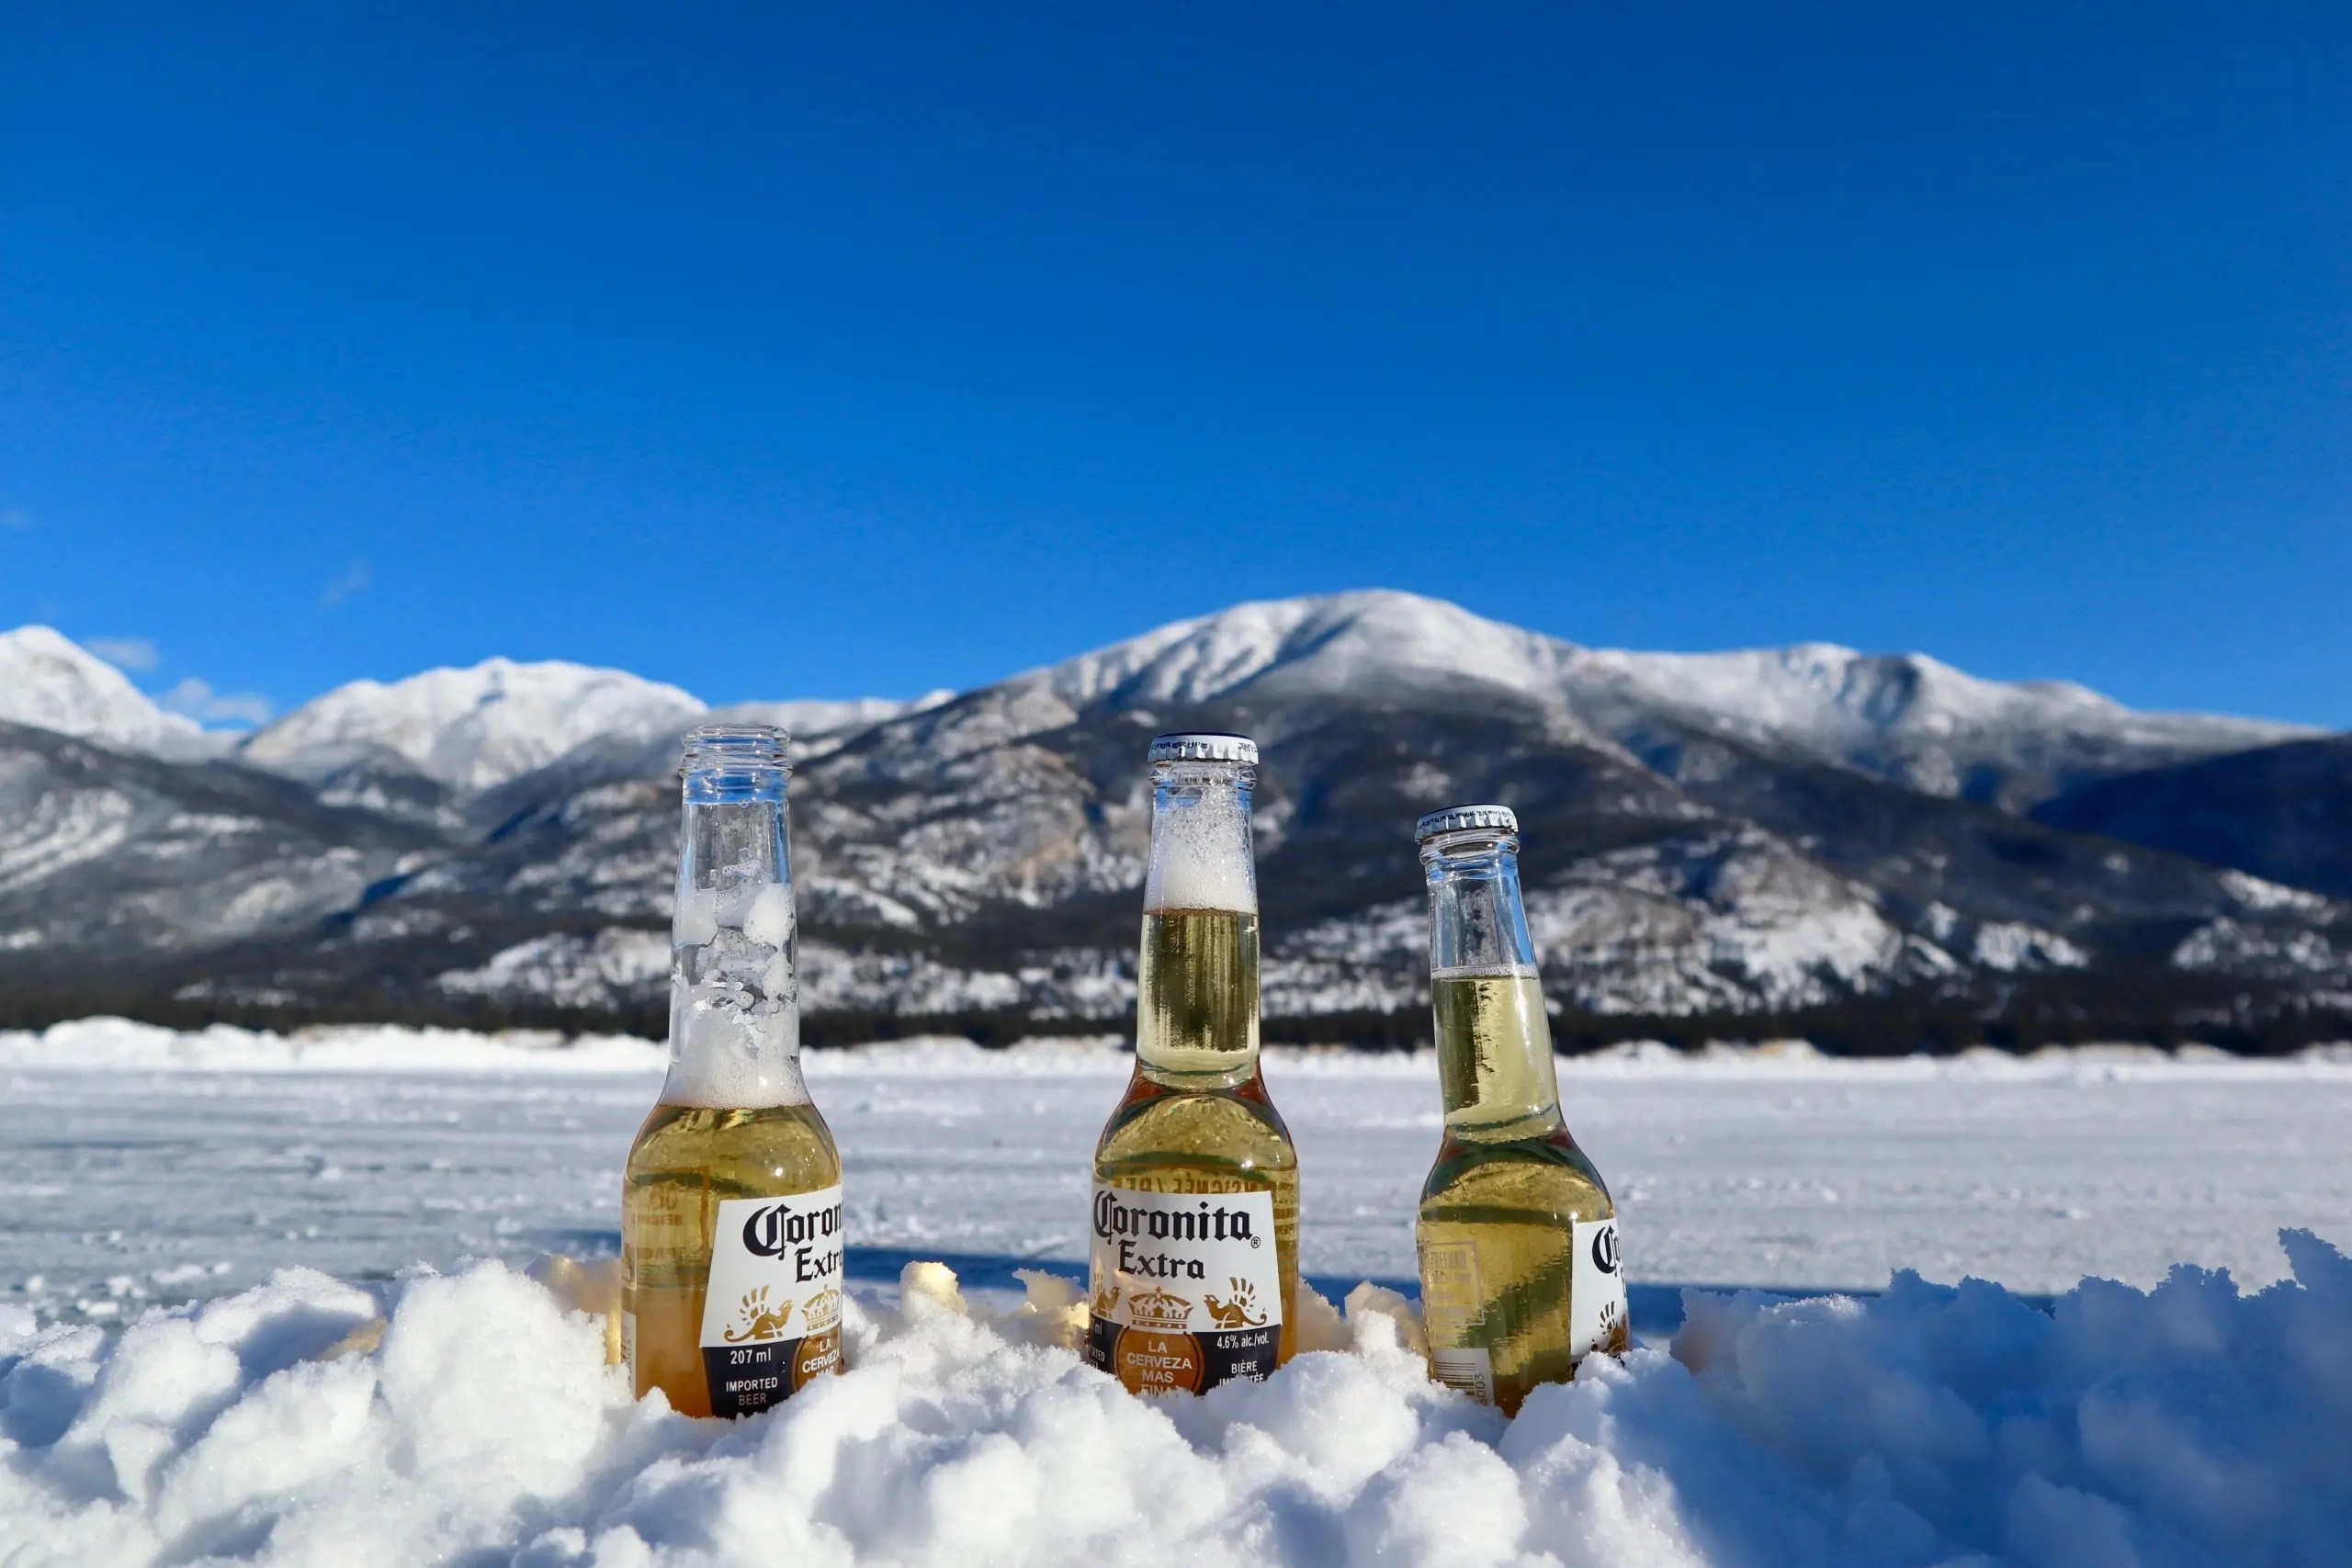 Corona Beer Finds Itself In A Tough Spot In A Time of Coronavirus